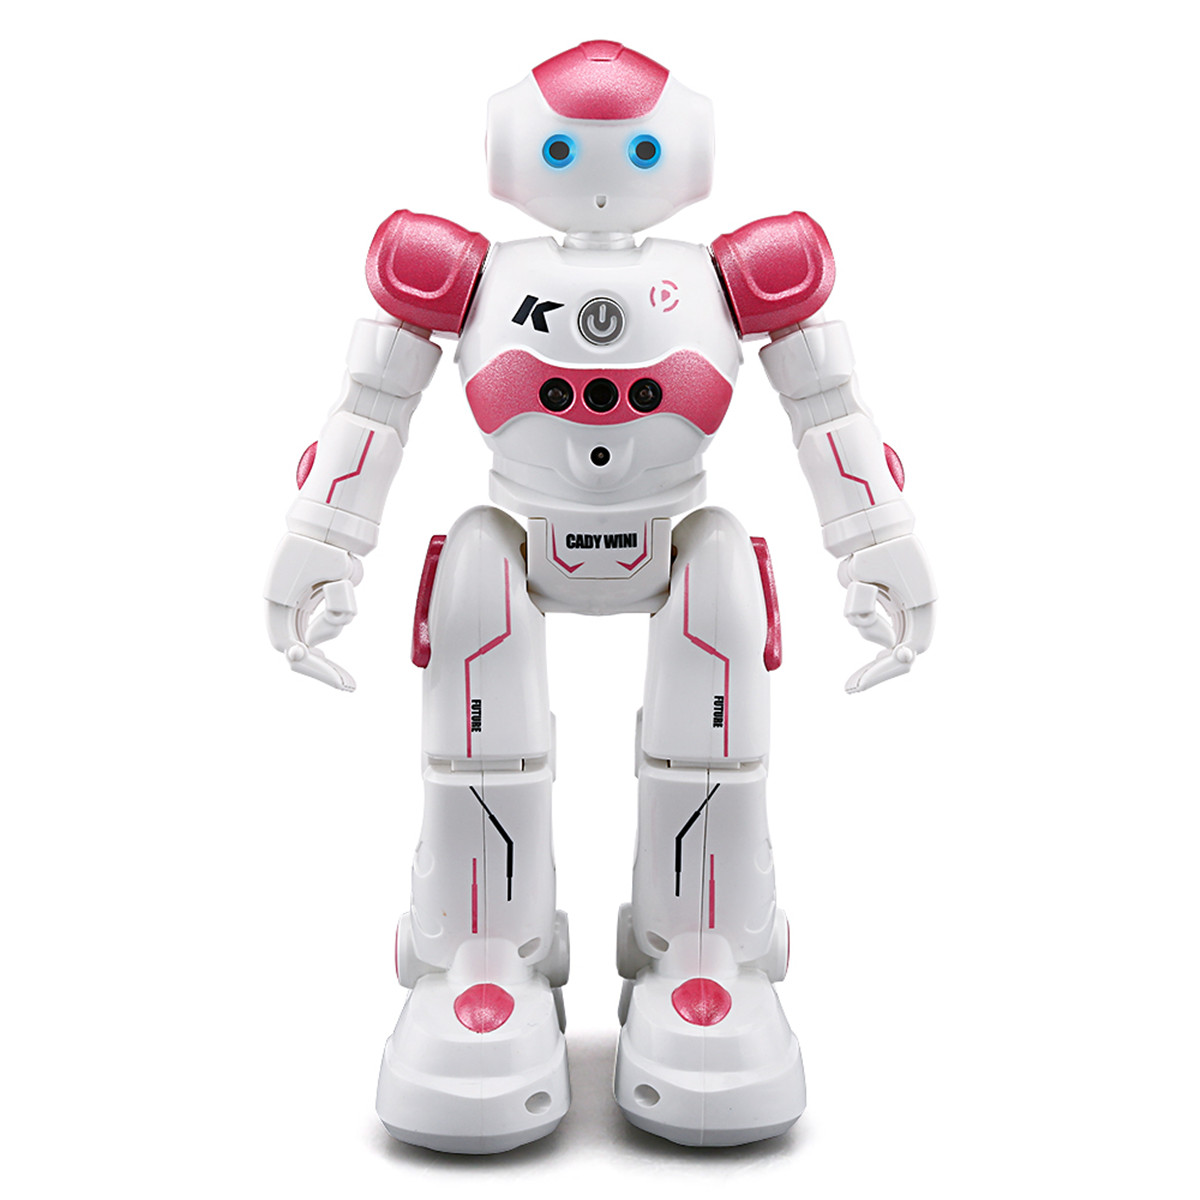 LEORY RC Robot Intelligent Programming Remote Control Robot Toy Biped Humanoid Robot For Children Kids Birthday Gift Present ...